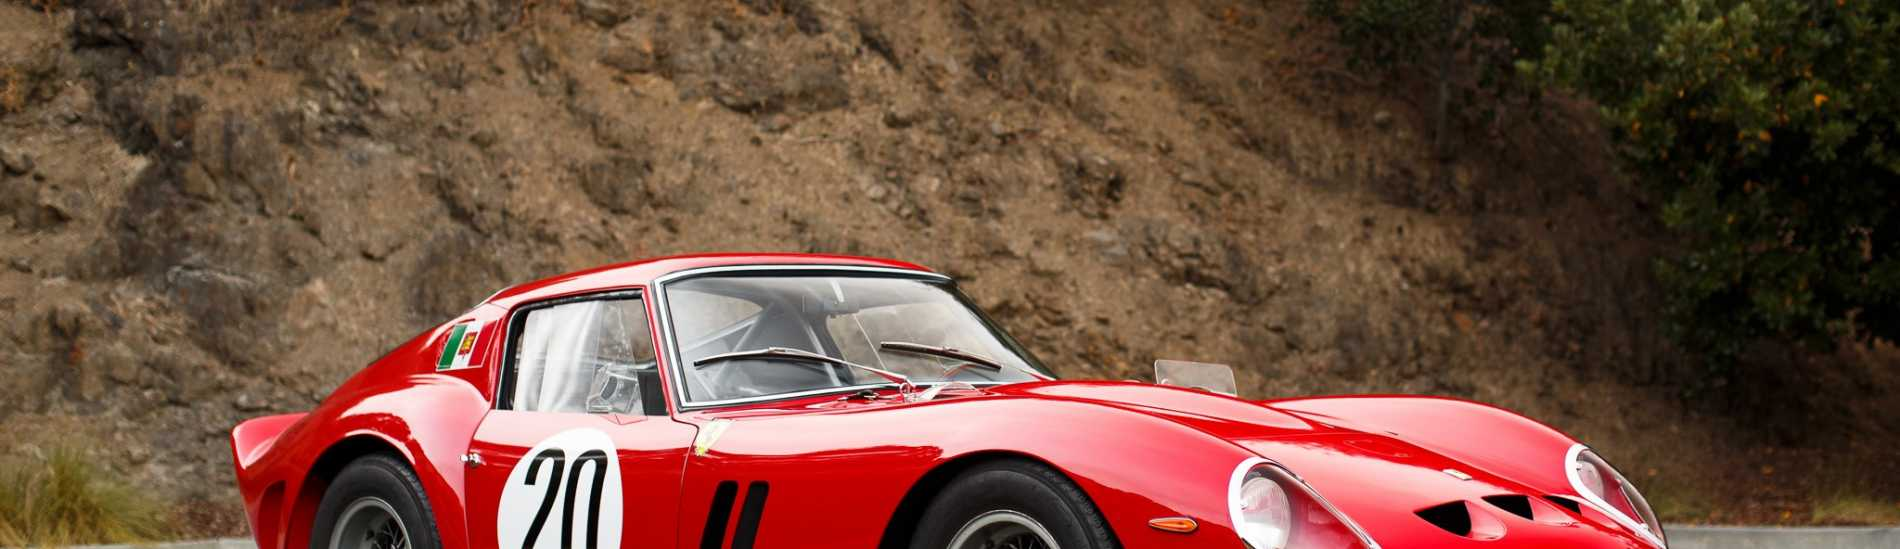 8 of the World's Most Sought-After Classic Cars